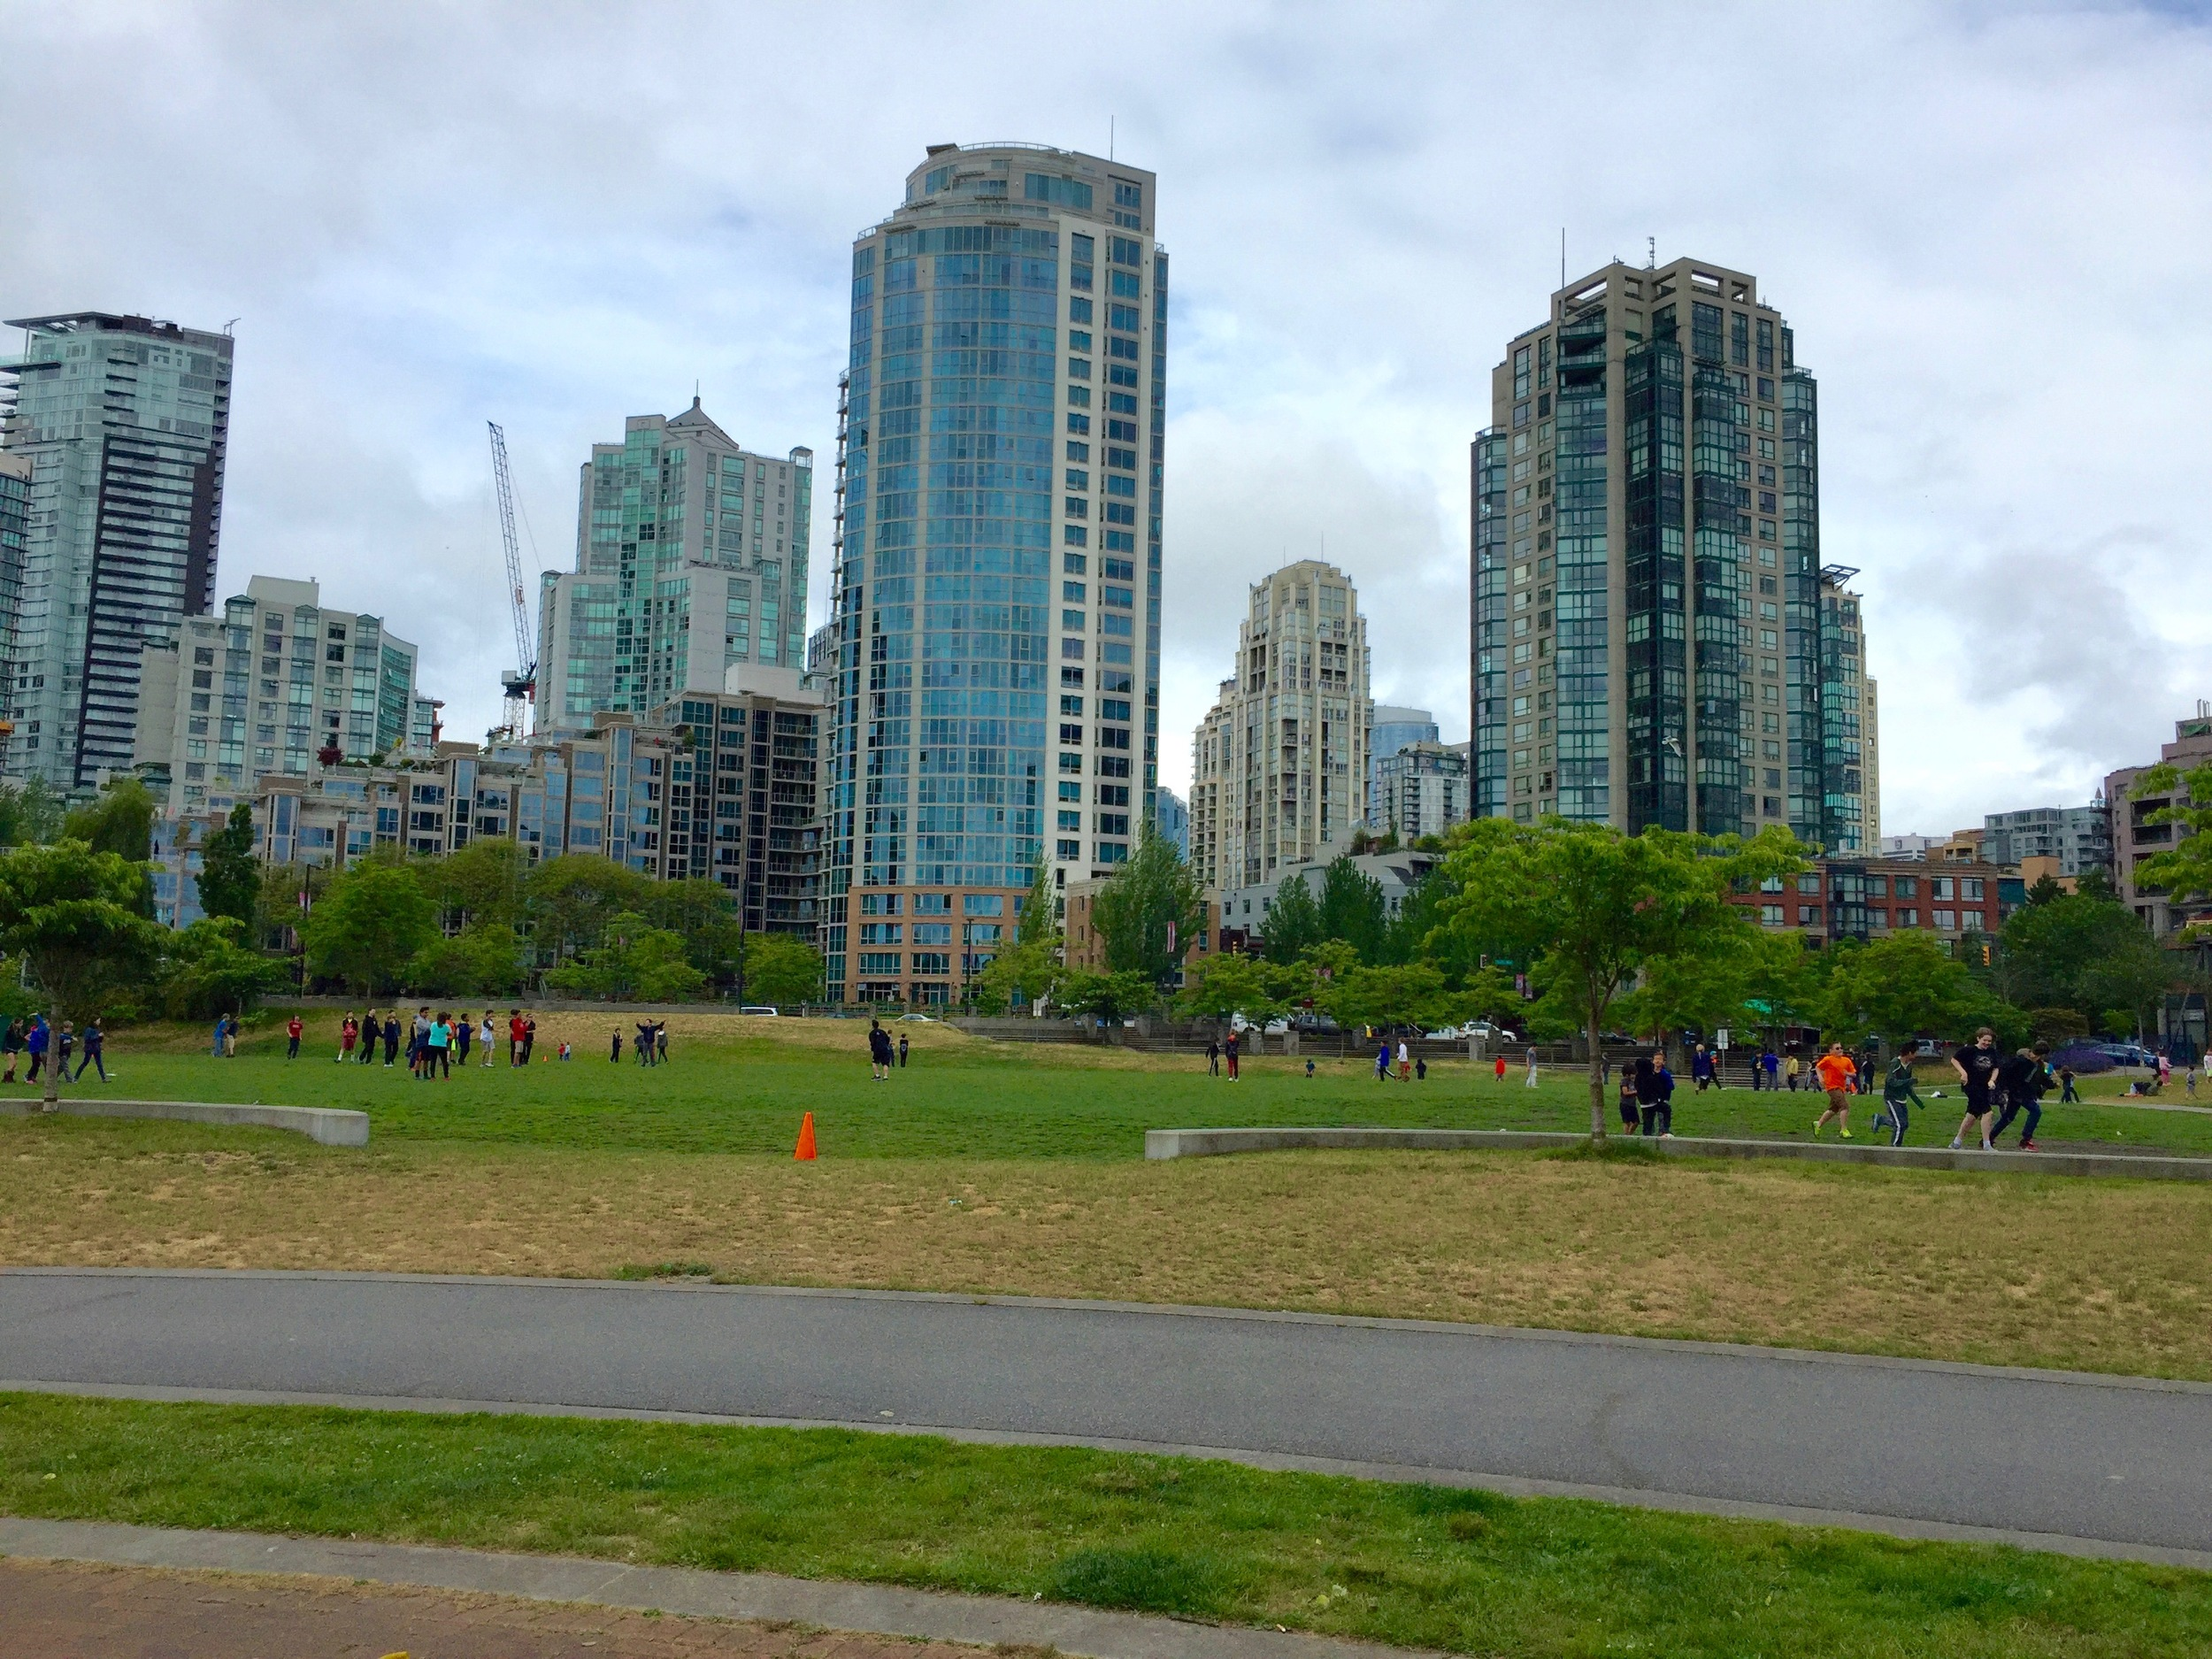 Residential towers and school playgrounds in False Creek area of Vancouver.